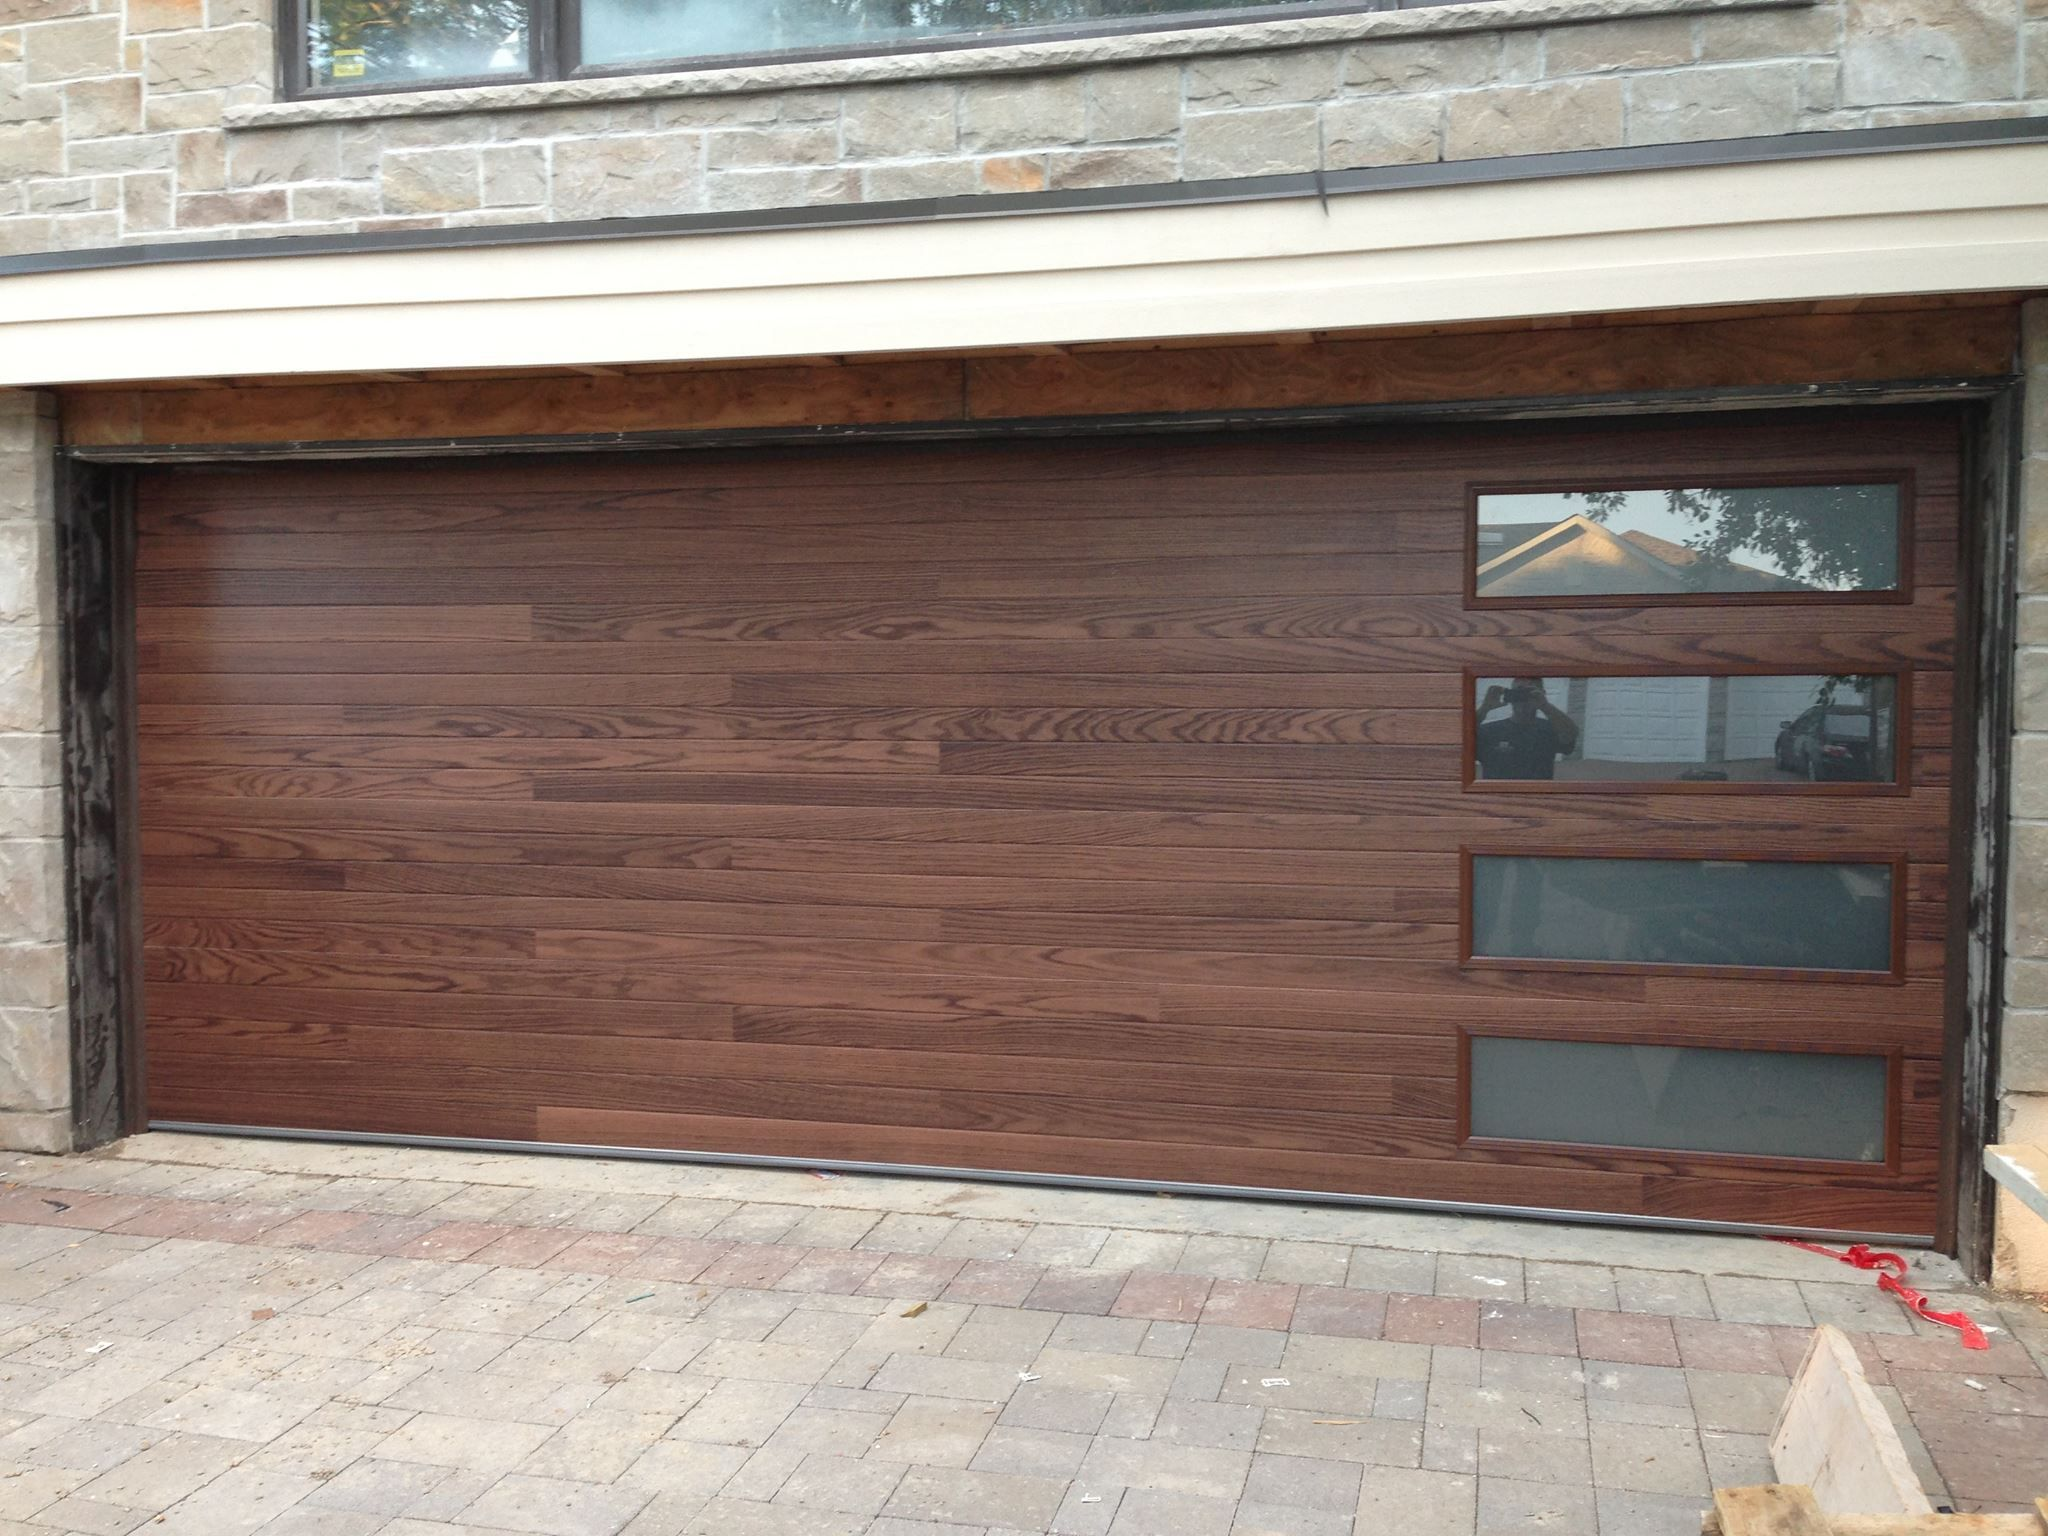 Transform Your Home Or Business With The Warmth And Appeal Of An Accents Planks Garage Door 34 Bes Garage Door Styles Garage Door Design Garage Door Makeover